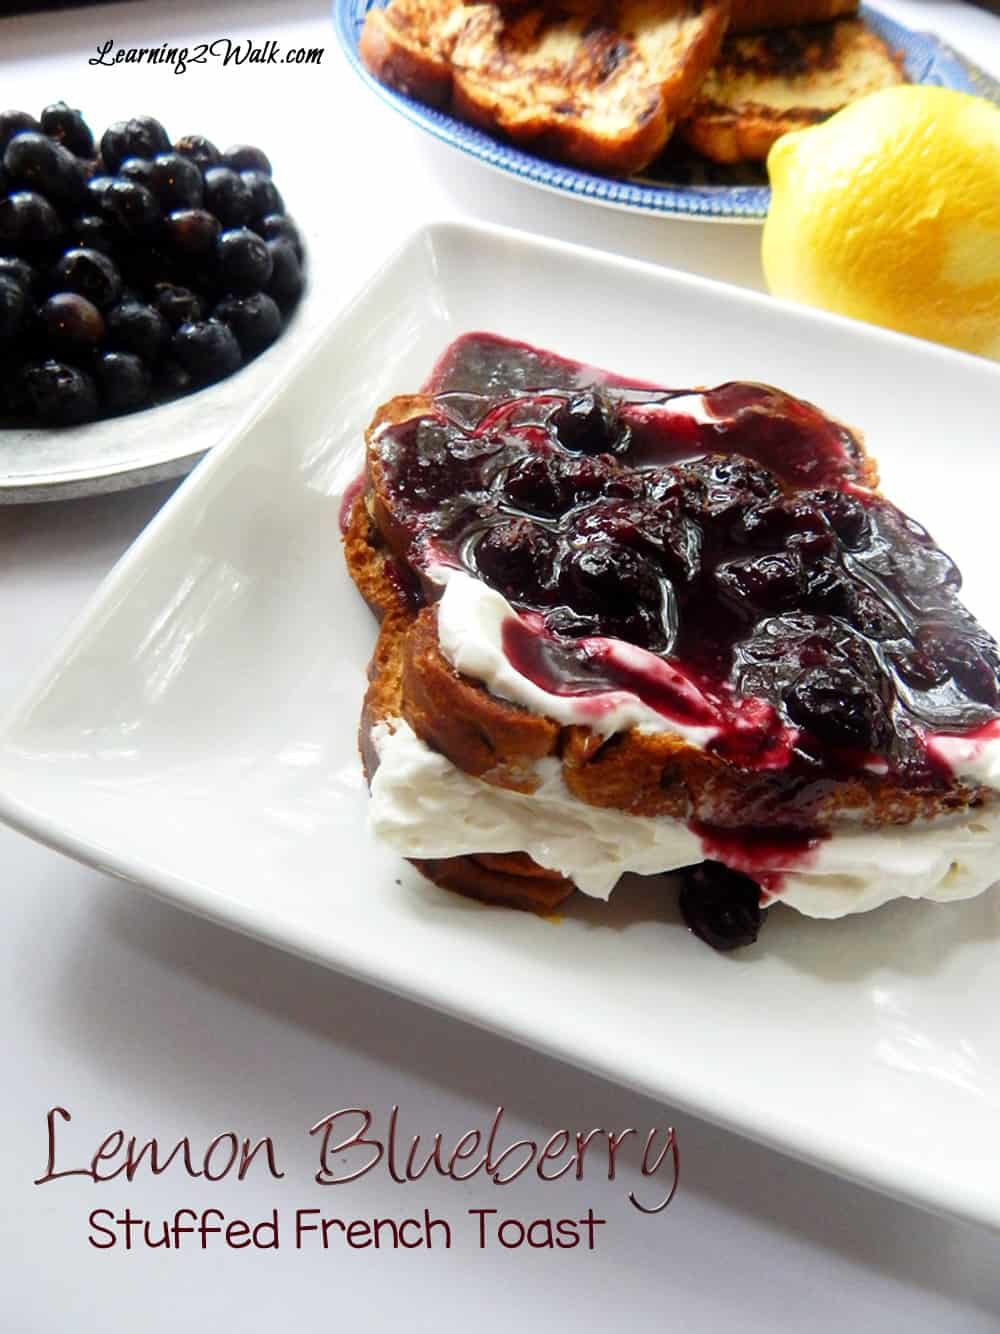 Looking for an easy recipe for breakfast? Try these lemon blueberry stuffed french toast